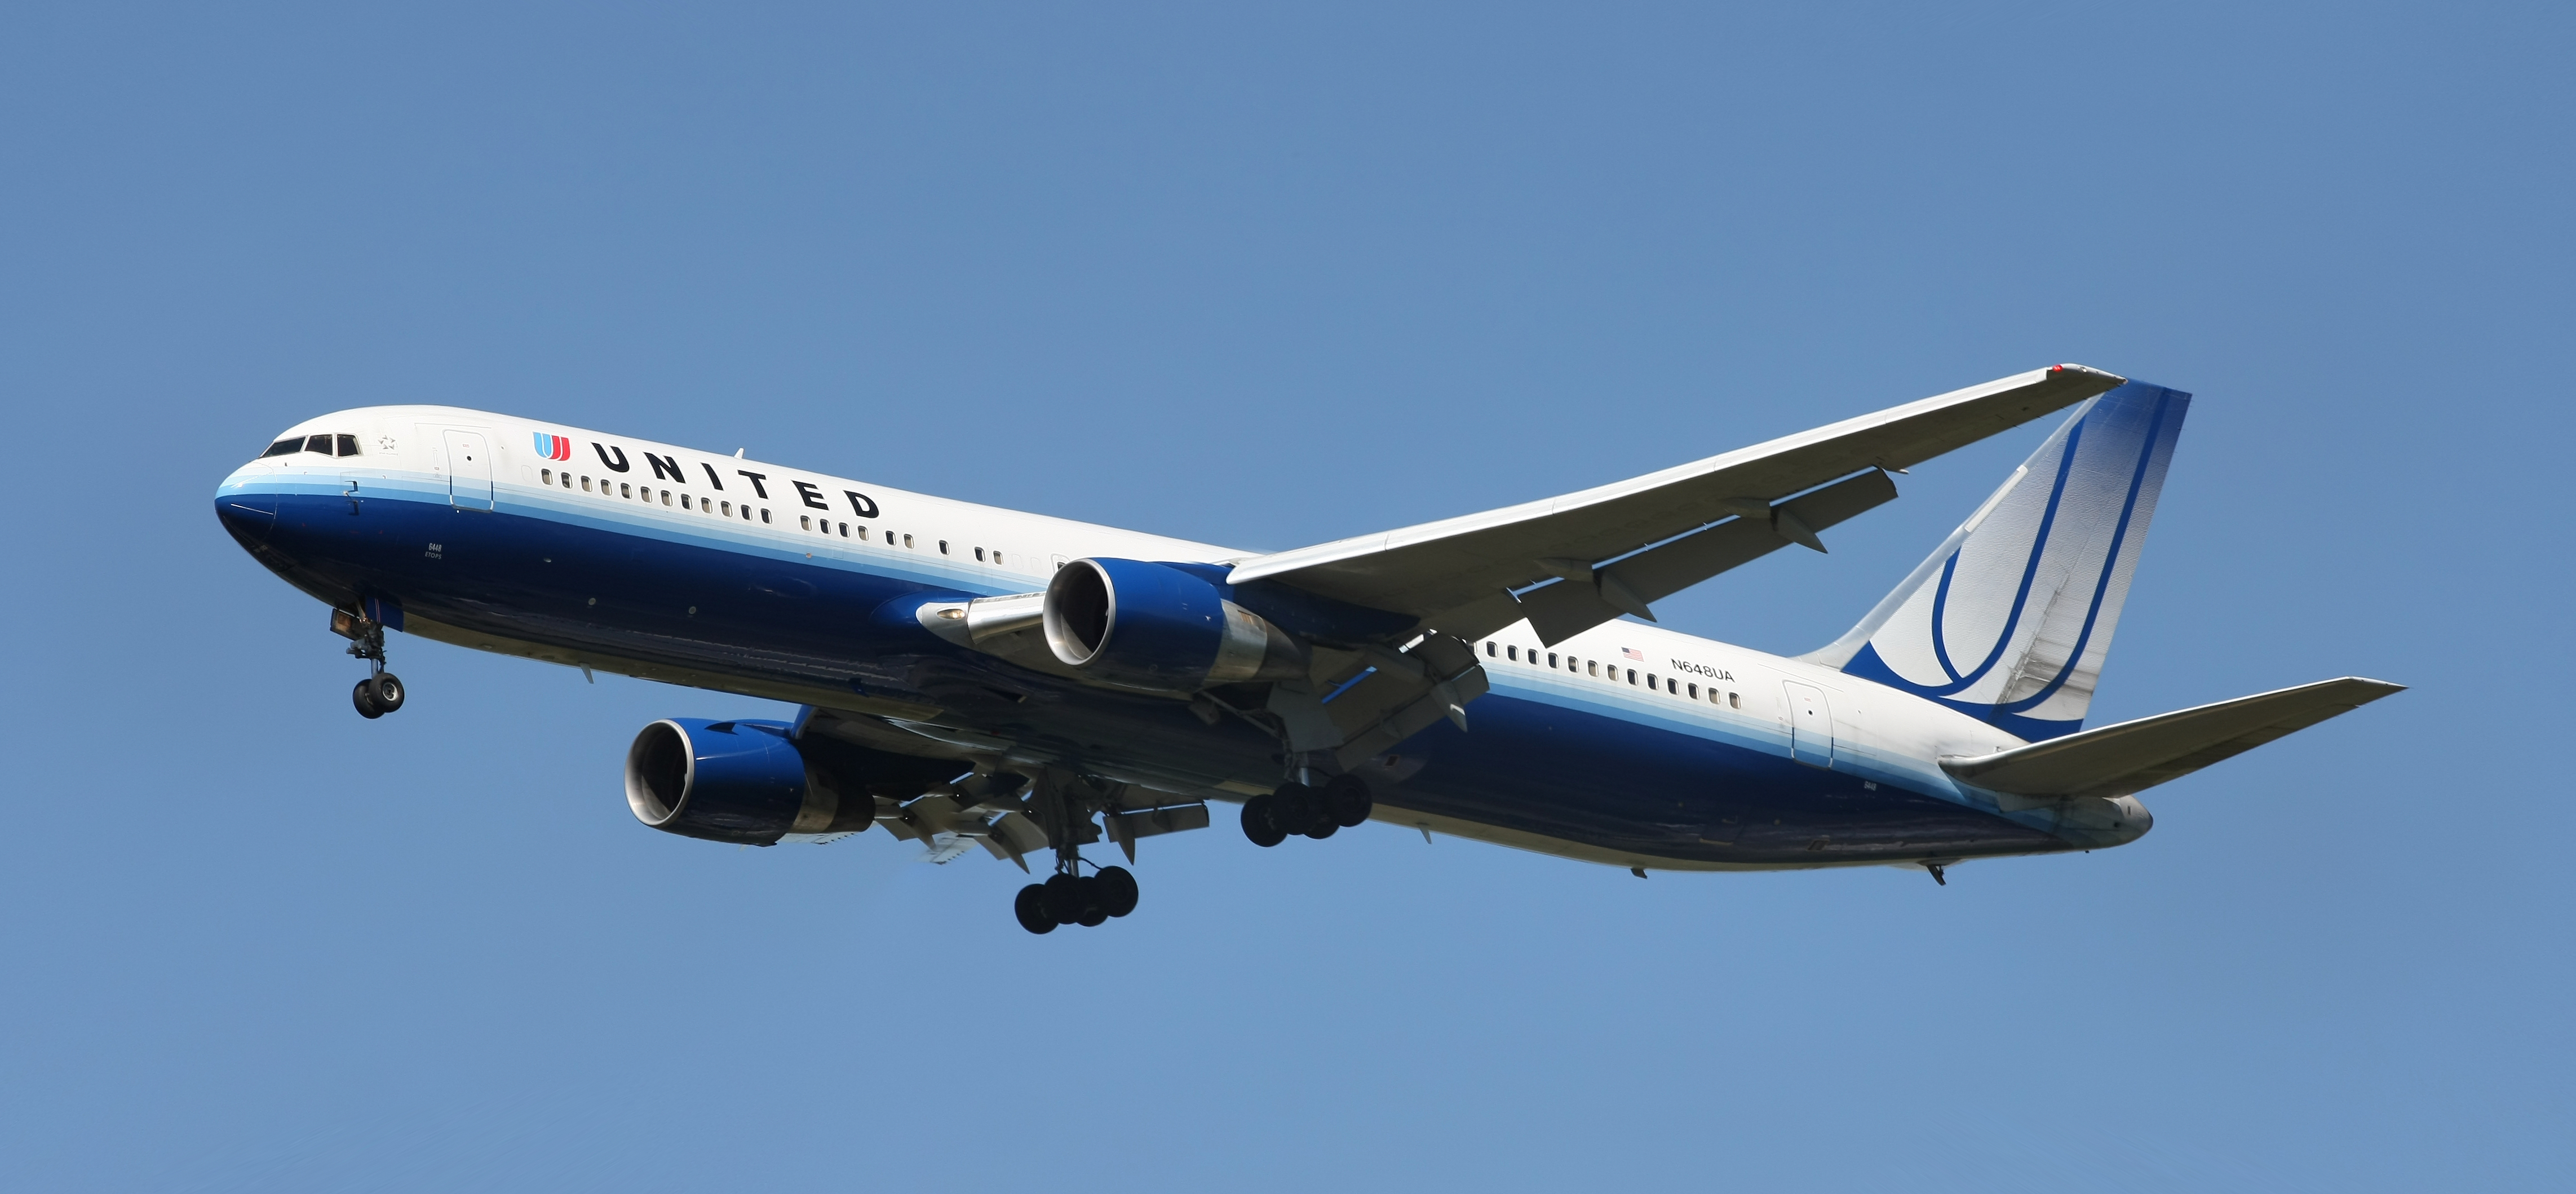 Download this Description United Airlines Nua picture